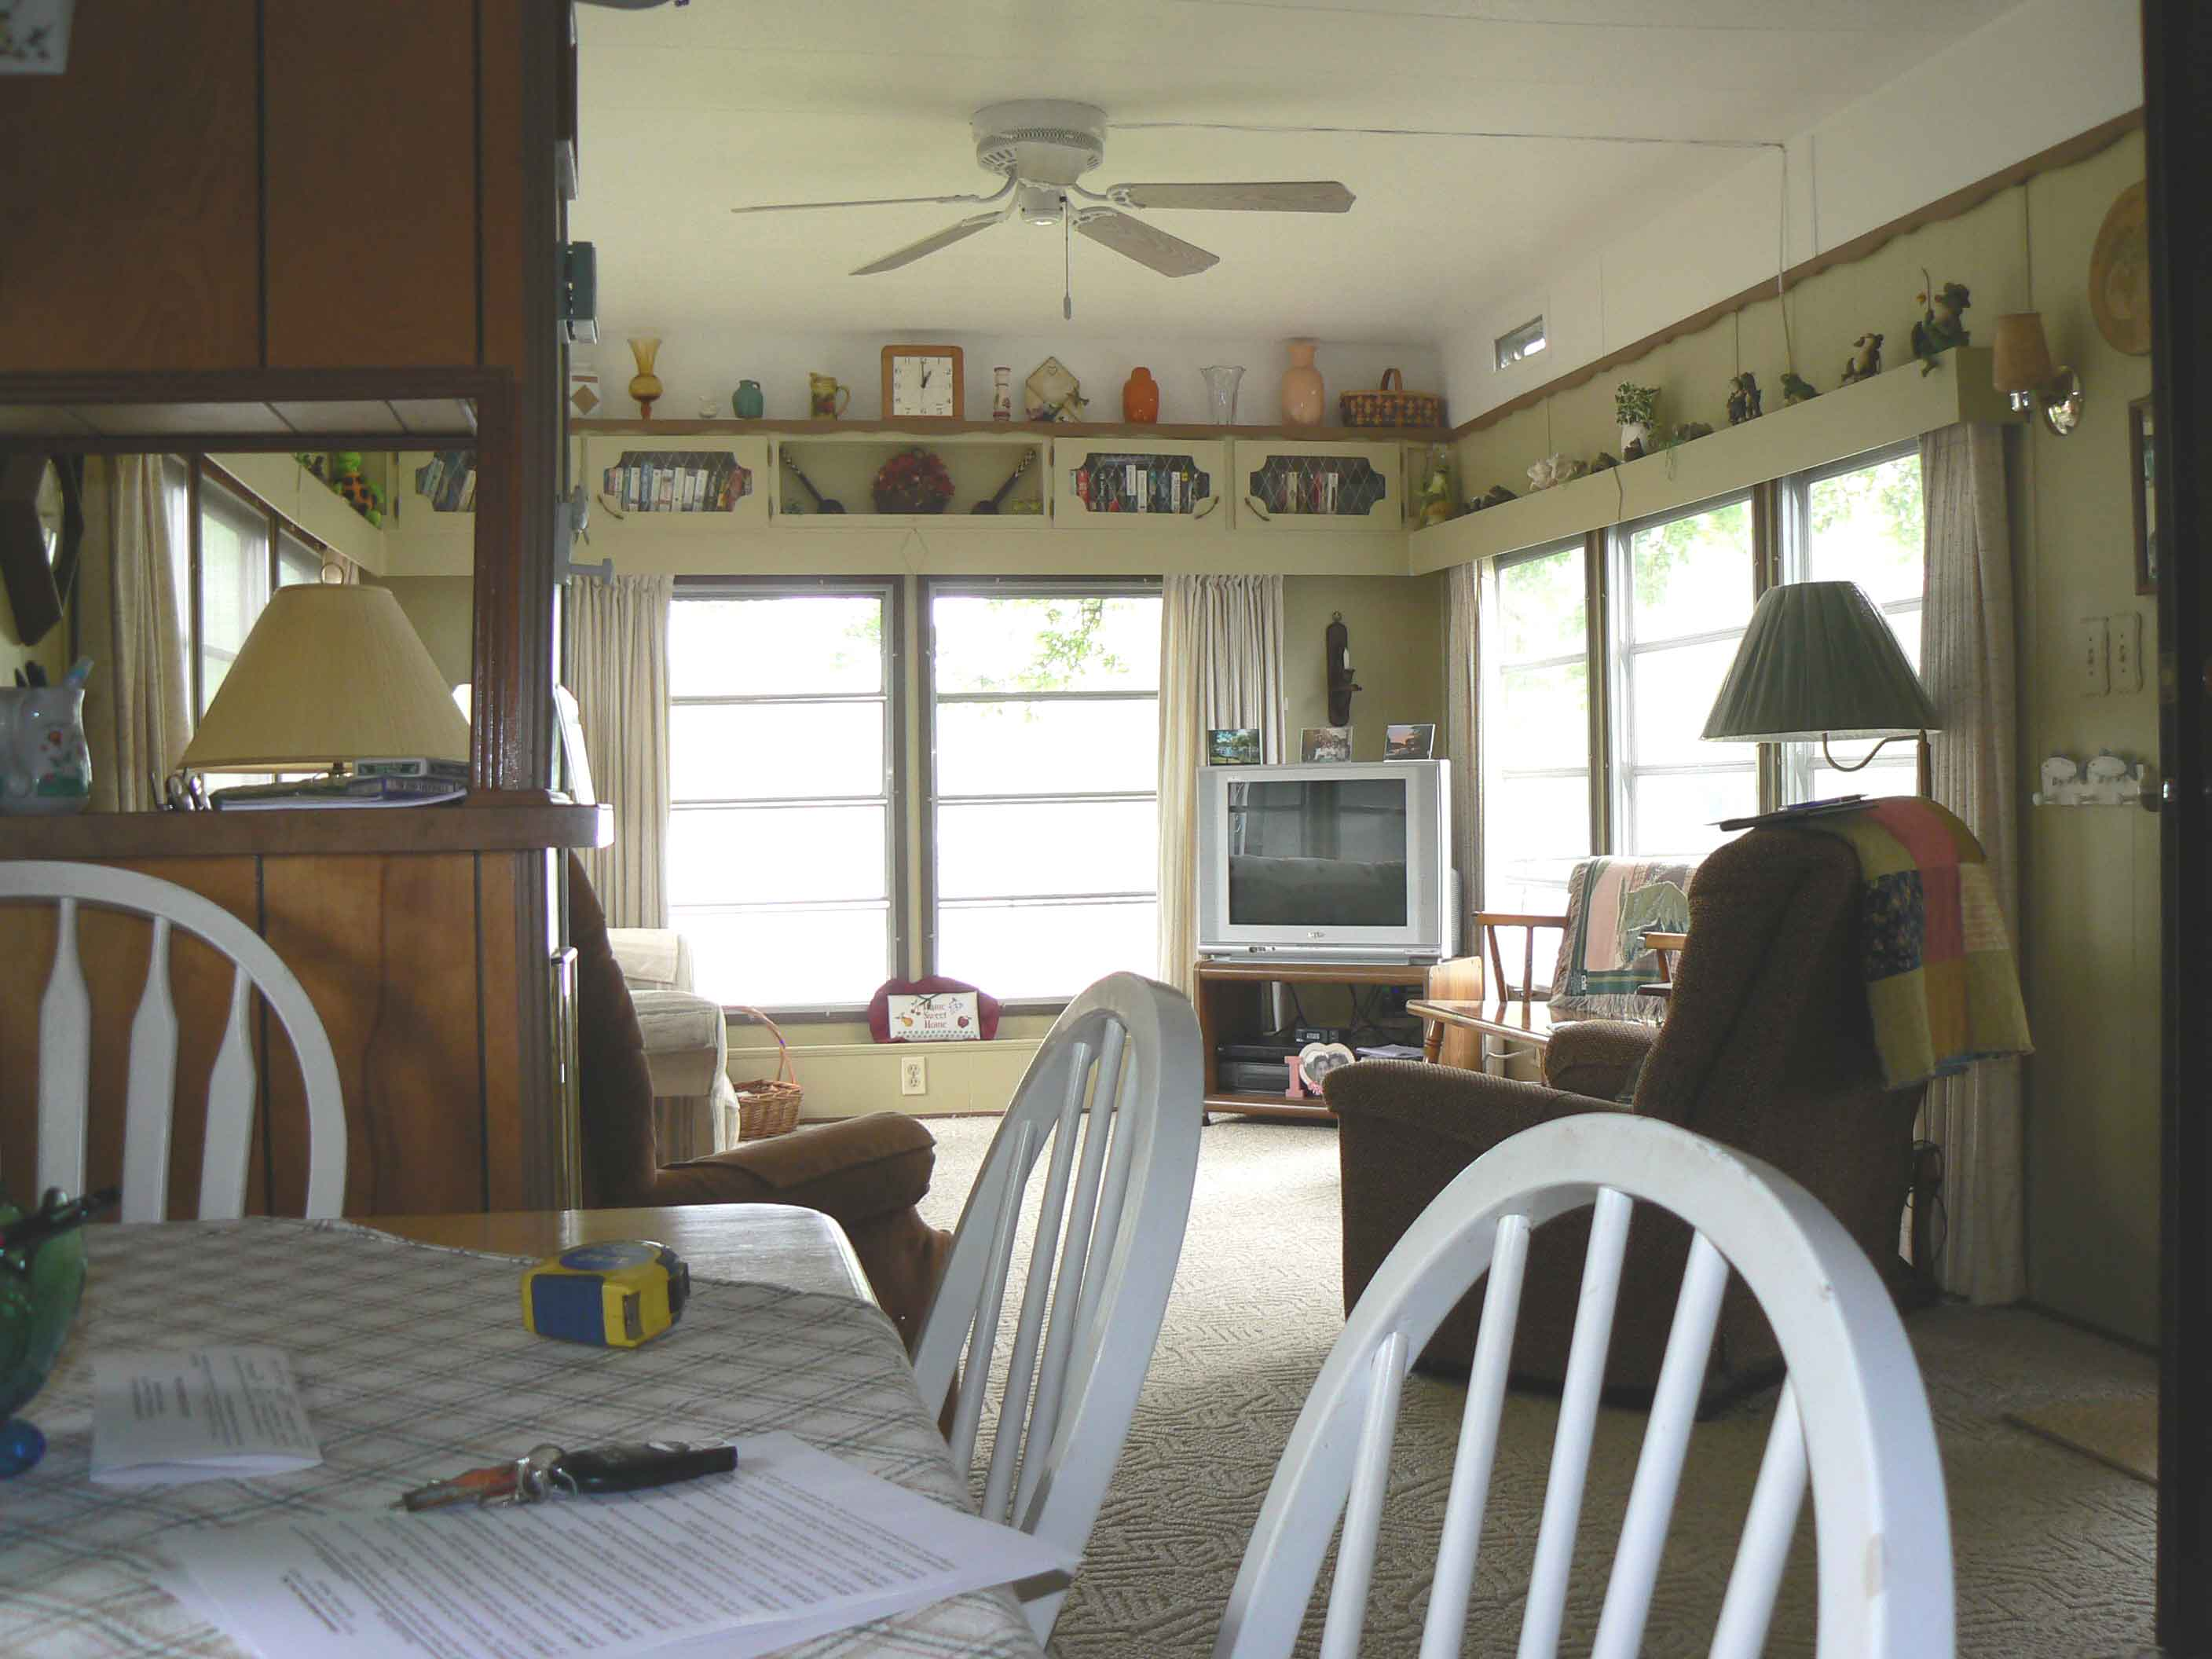 comments waterfront home on lake michiana 12x20 enclosed porch 12x12 covered patio 12x16 deck on the channel dock 10x14 shed with concrete floor and